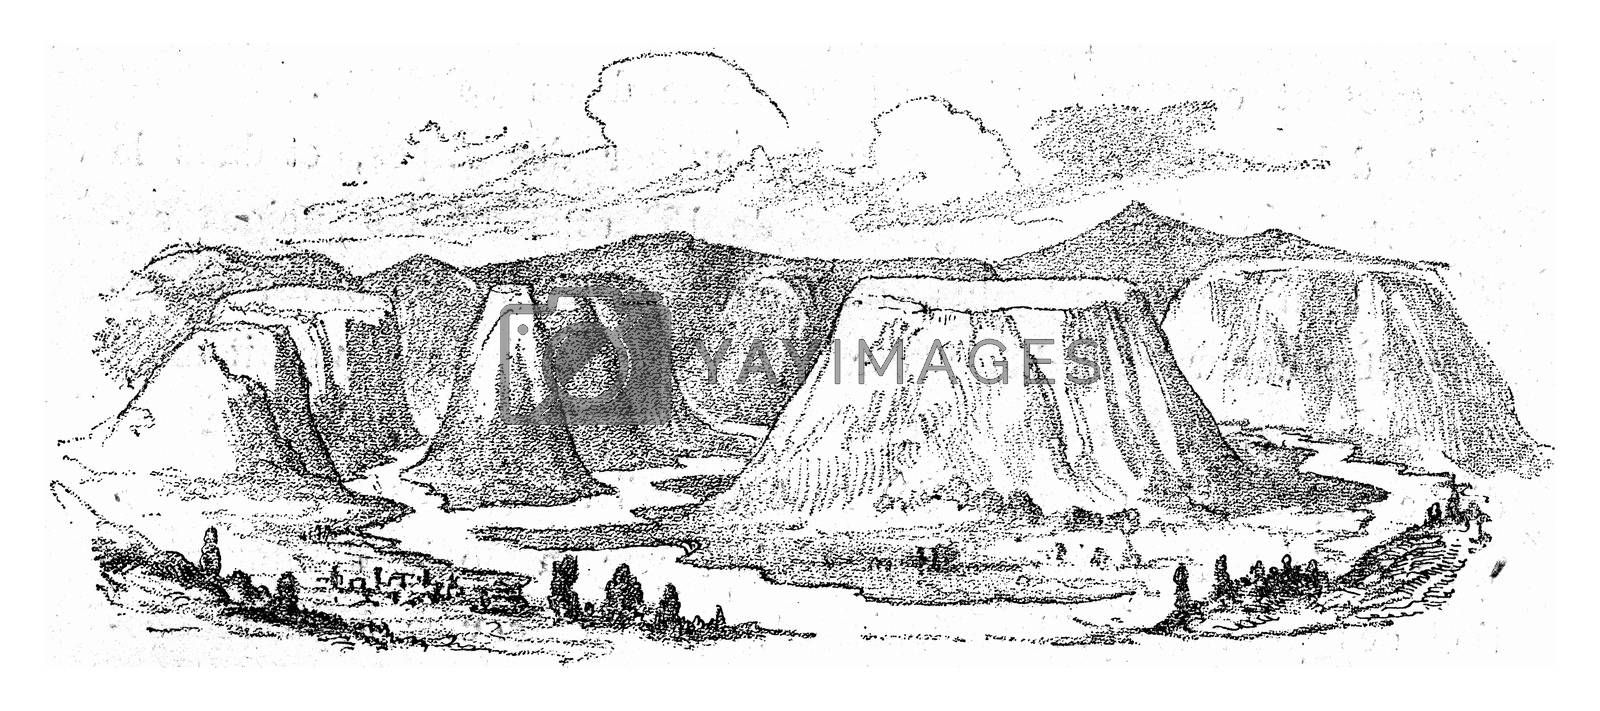 Erosion and denudation of a plateau by running water, vintage engraved illustration. From Natural Creation and Living Beings.